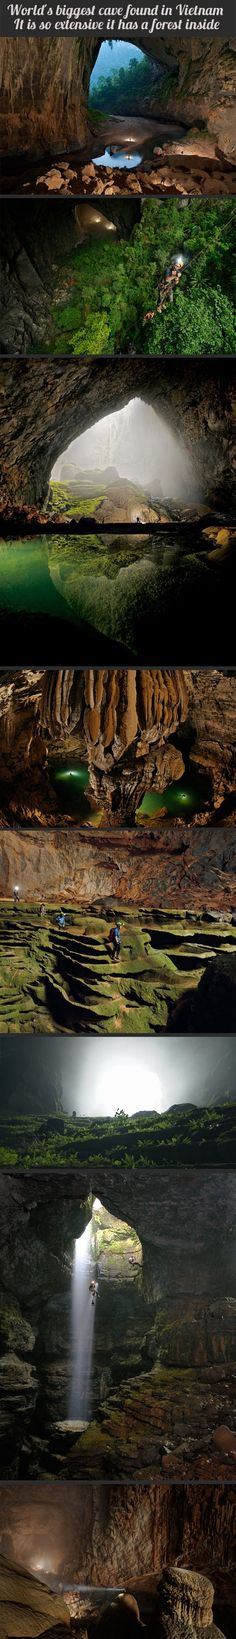 Worlds biggest cave. Am I the only one who thinks of the Byzantium & Weeping Angels?